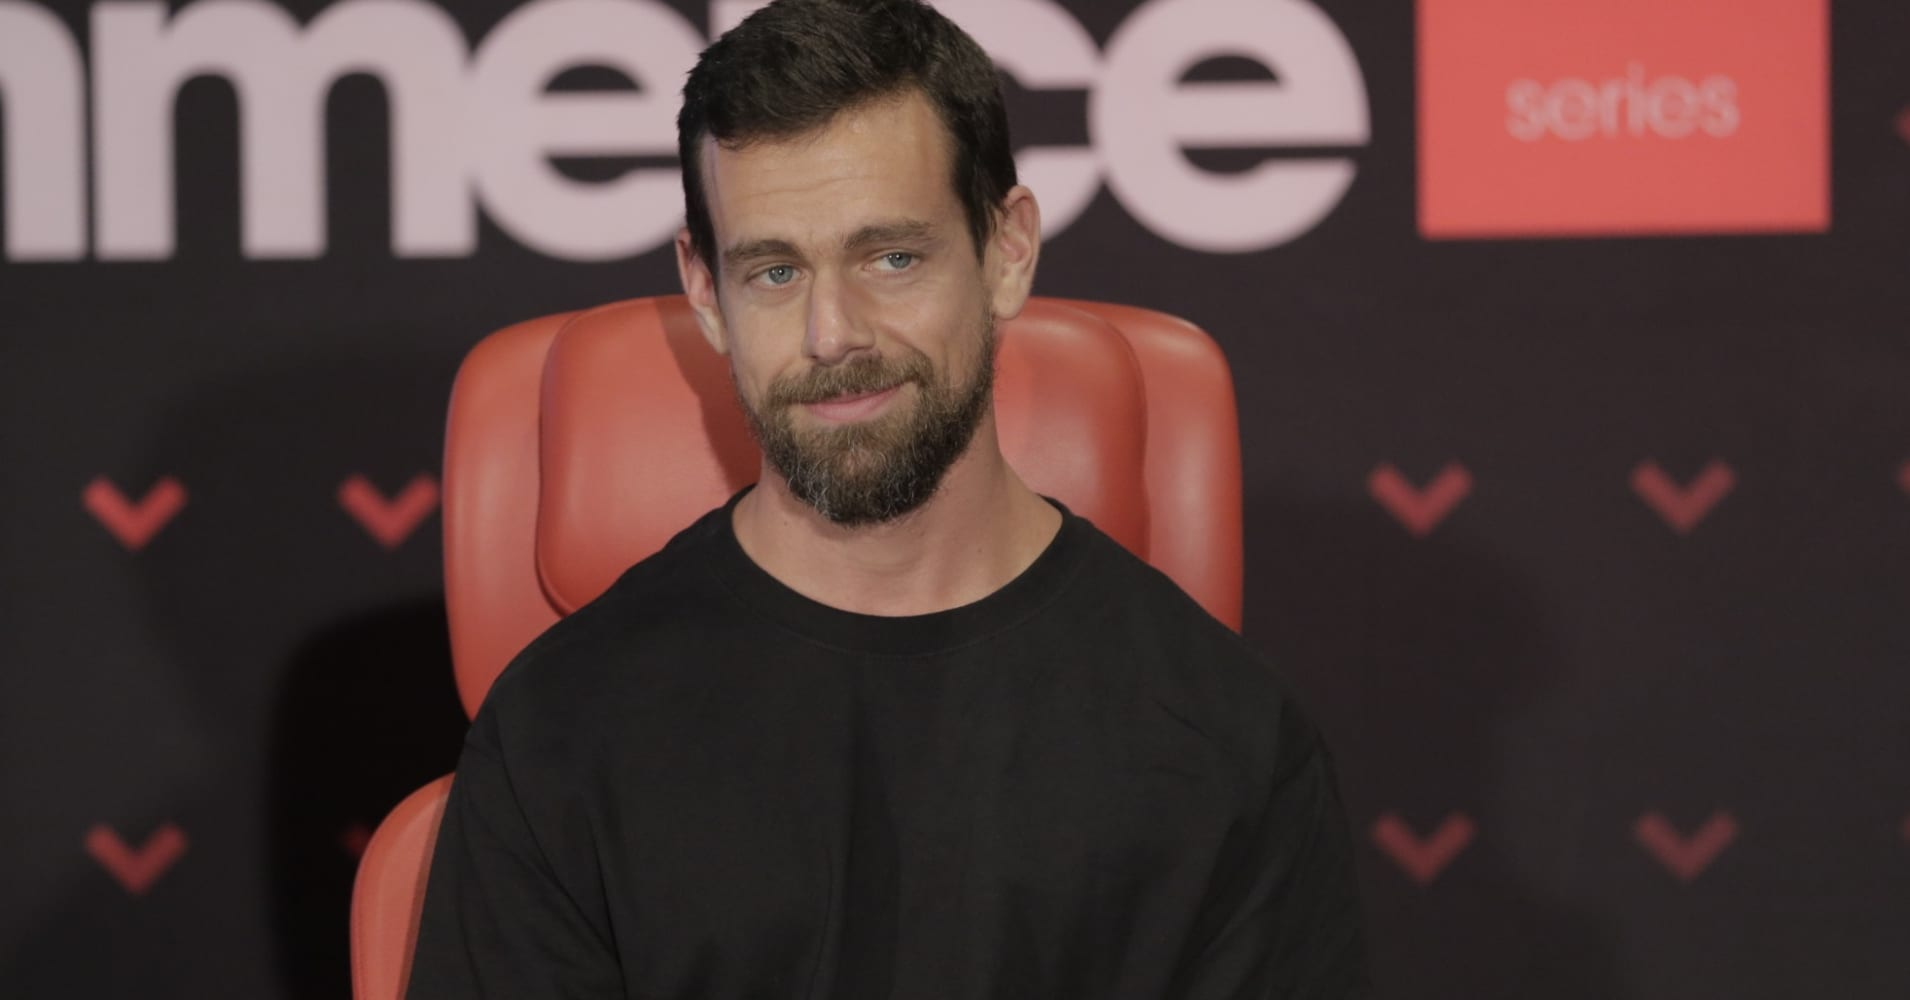 The ugly truth in Twitter's earnings is that it's shrinking into irrelevance